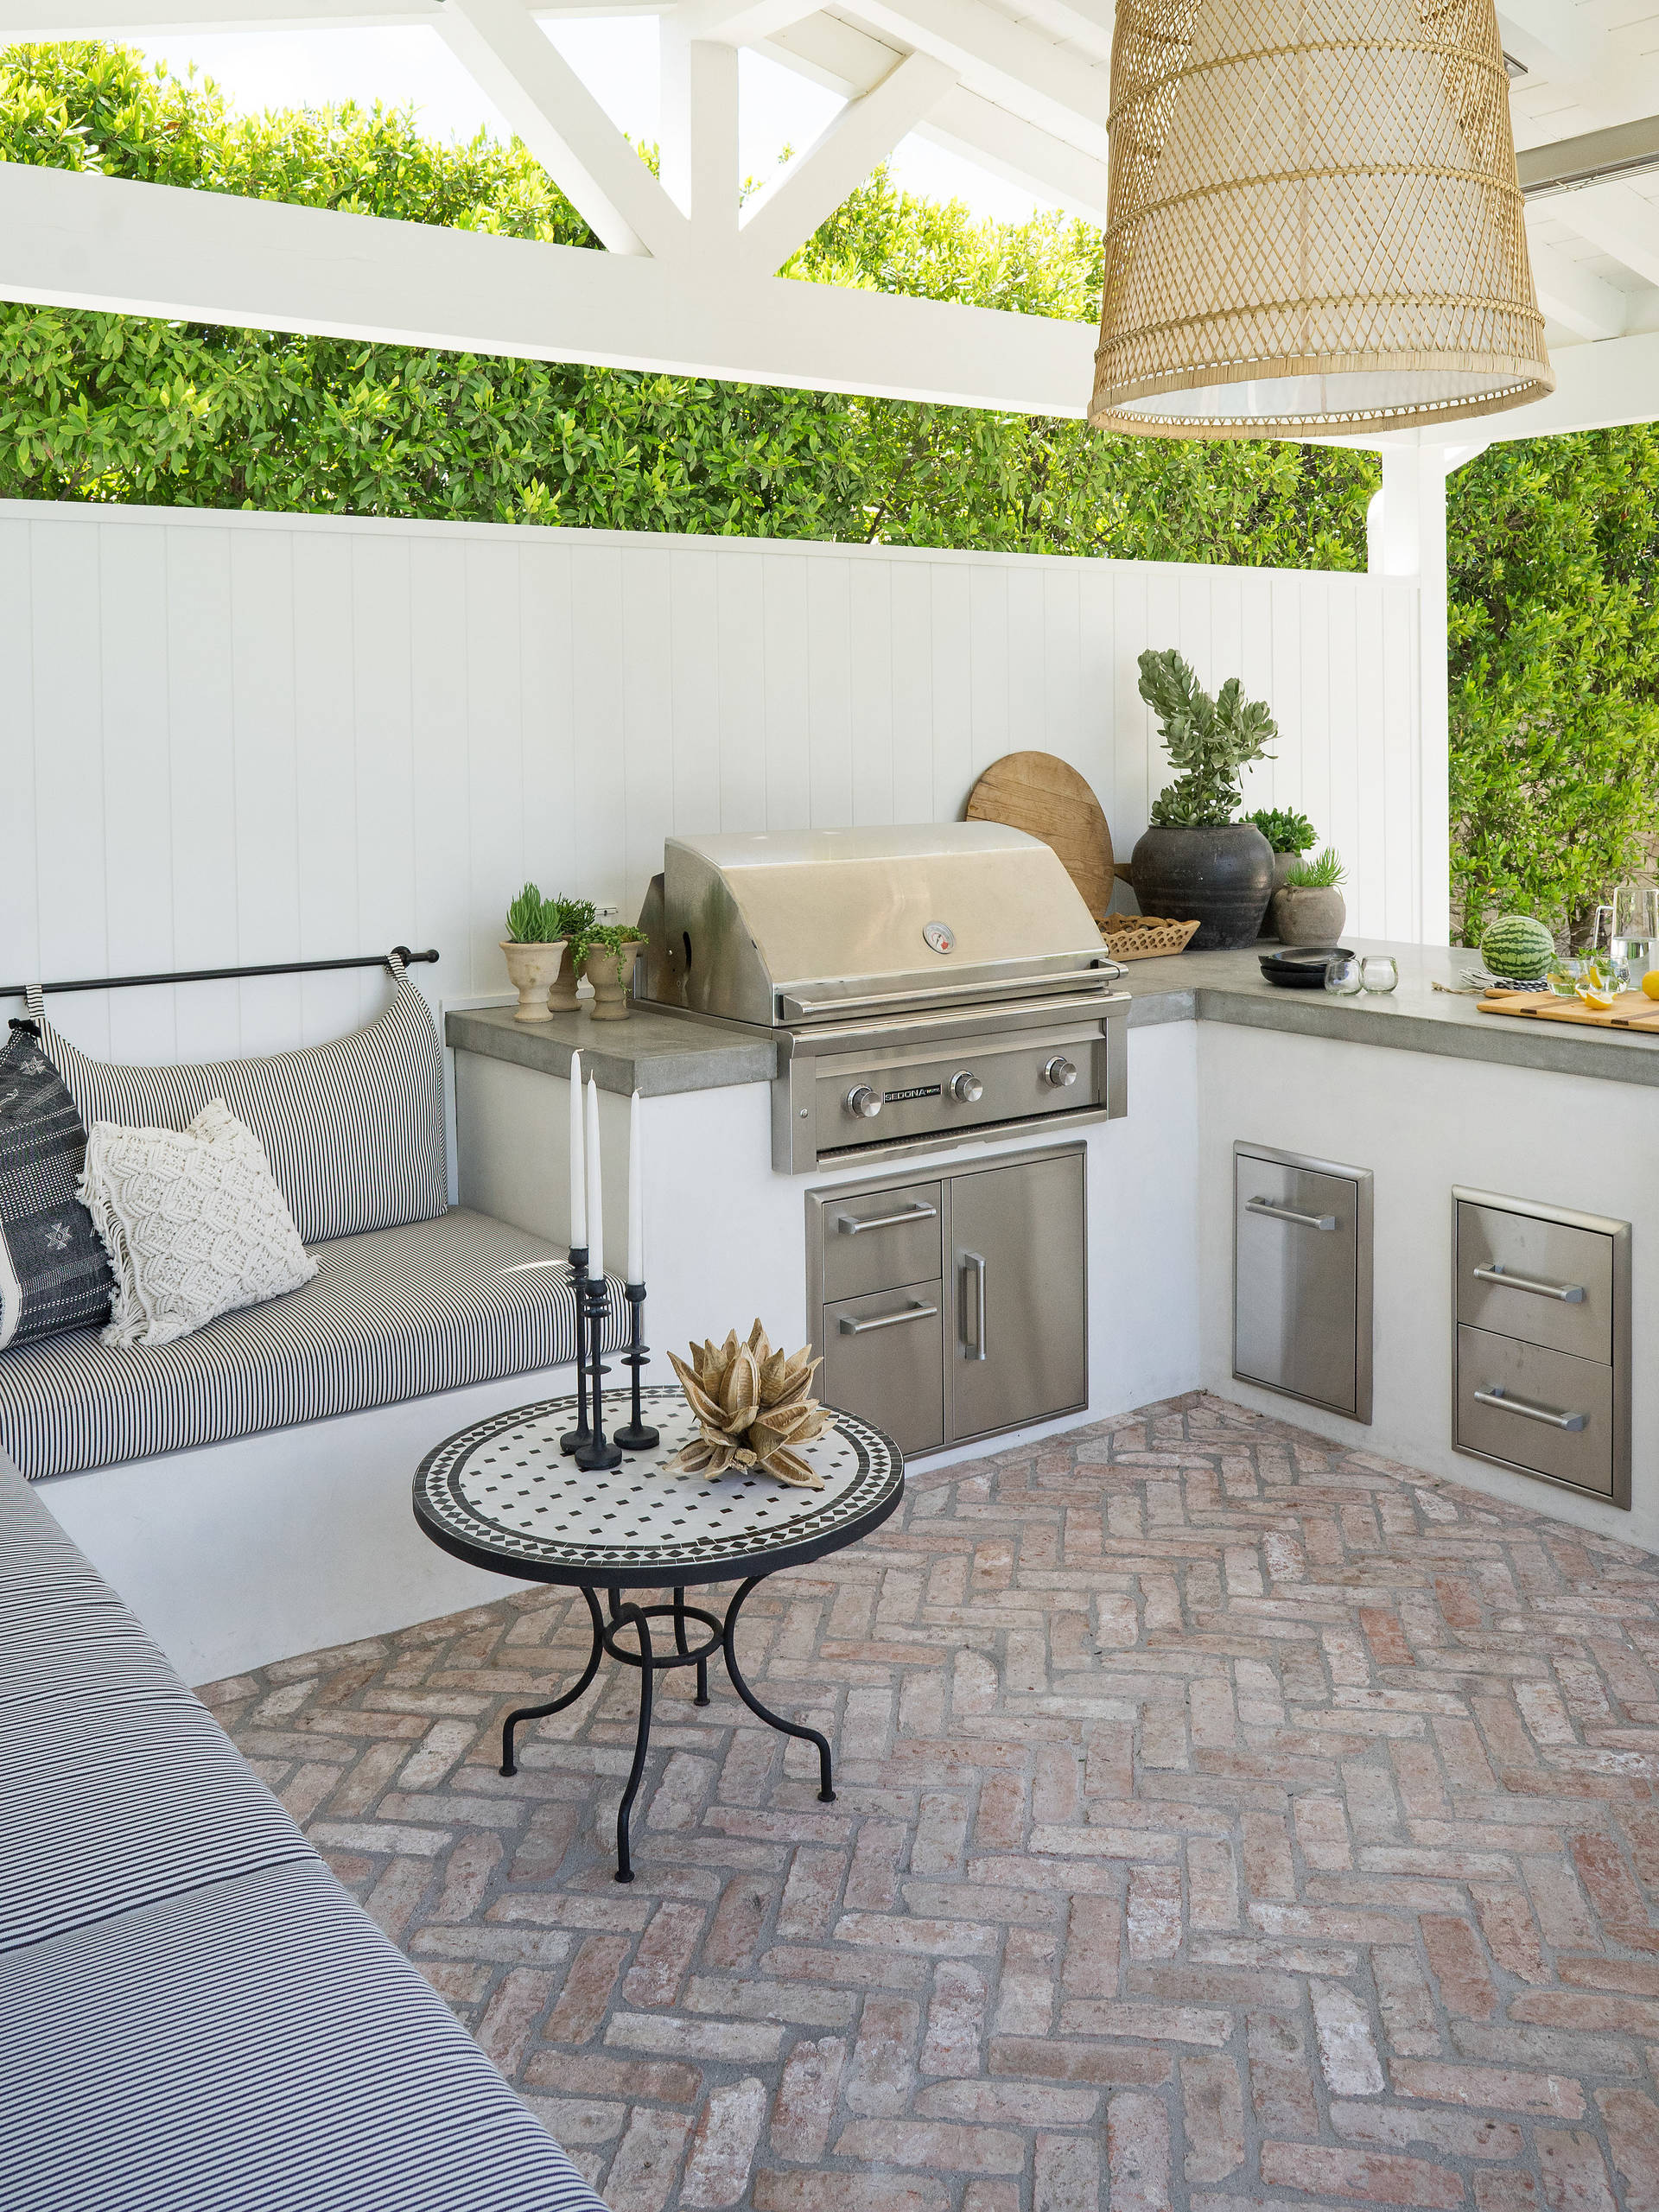 75 Beautiful Outdoor Kitchen Design Pictures Ideas January 2021 Houzz